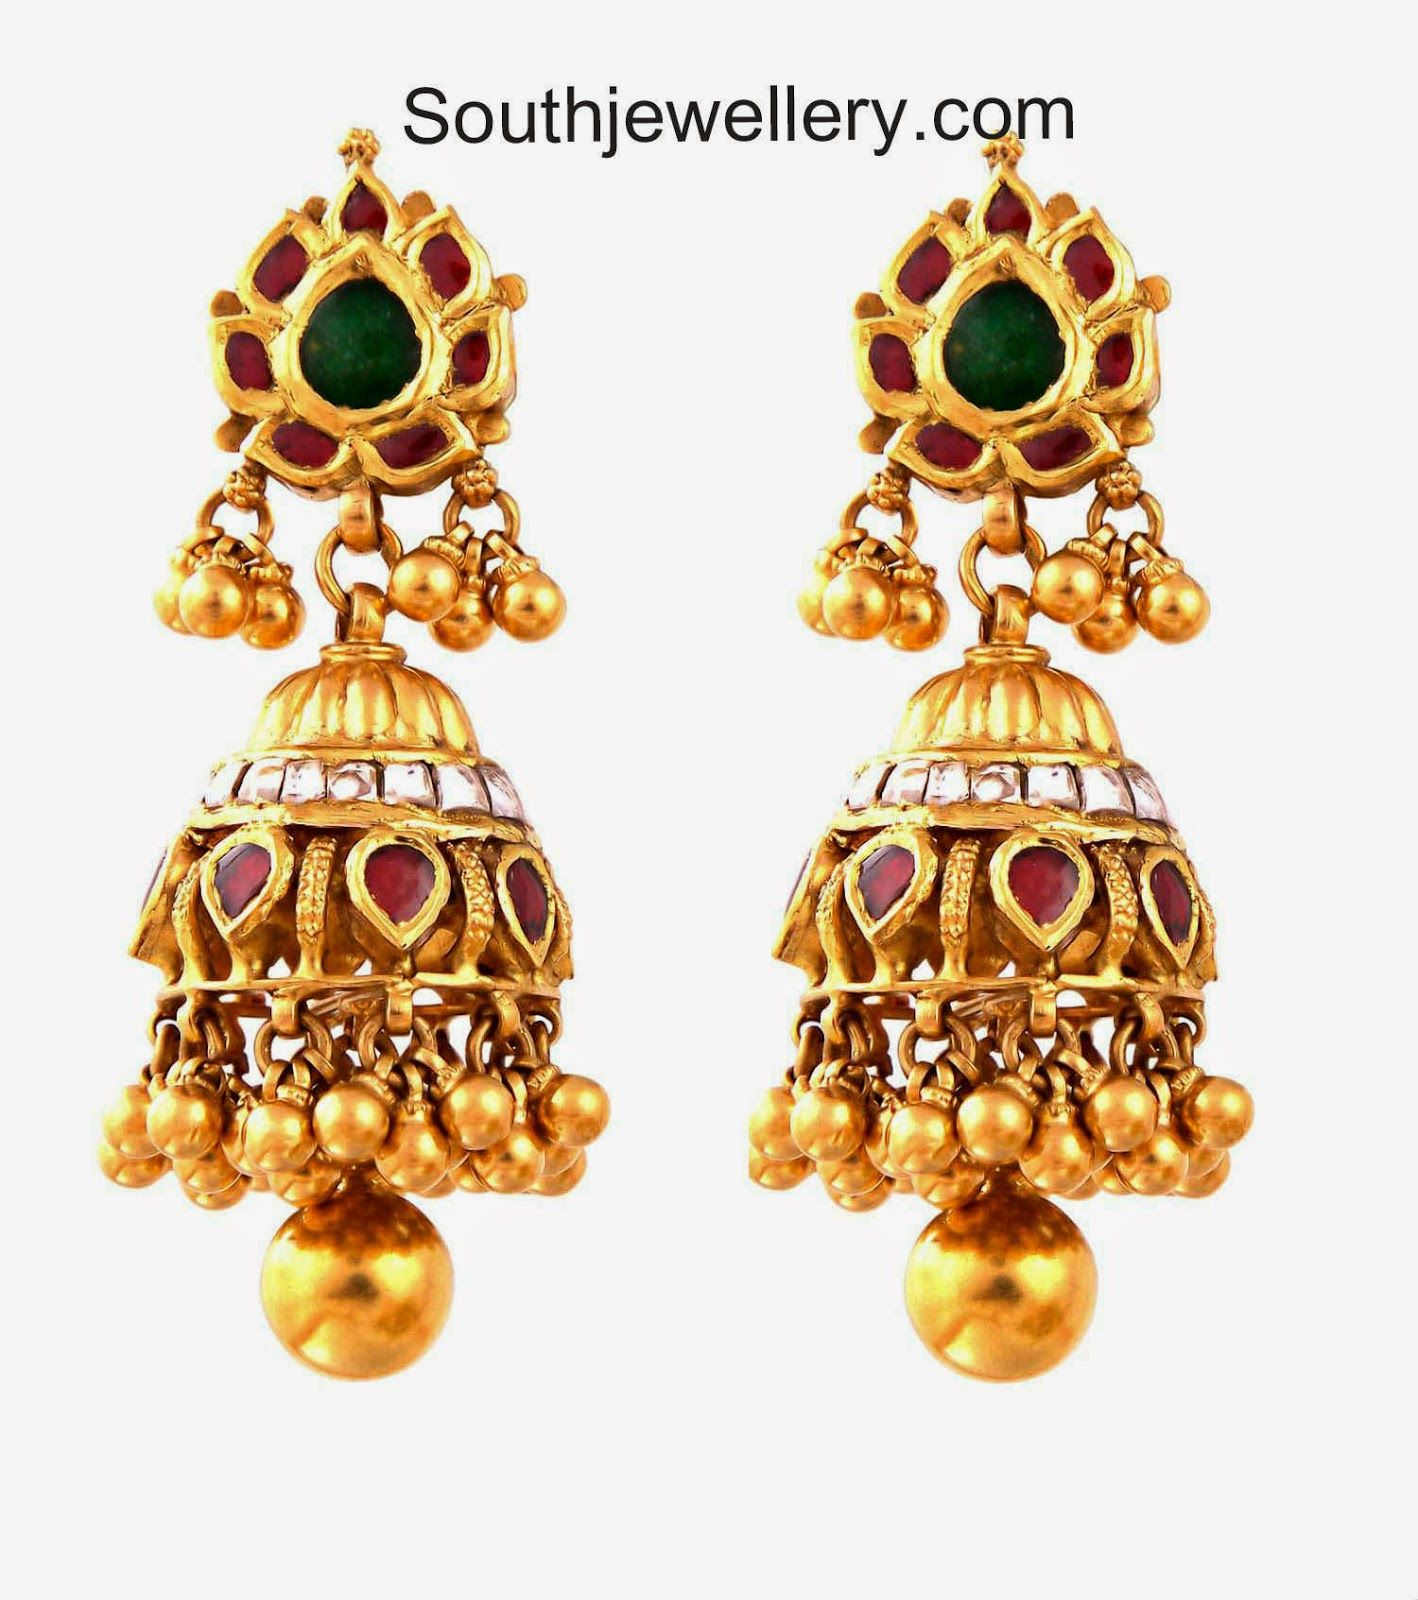 gold jhumkas | Jewellery-earrings | Pinterest | Gold, Indian ...